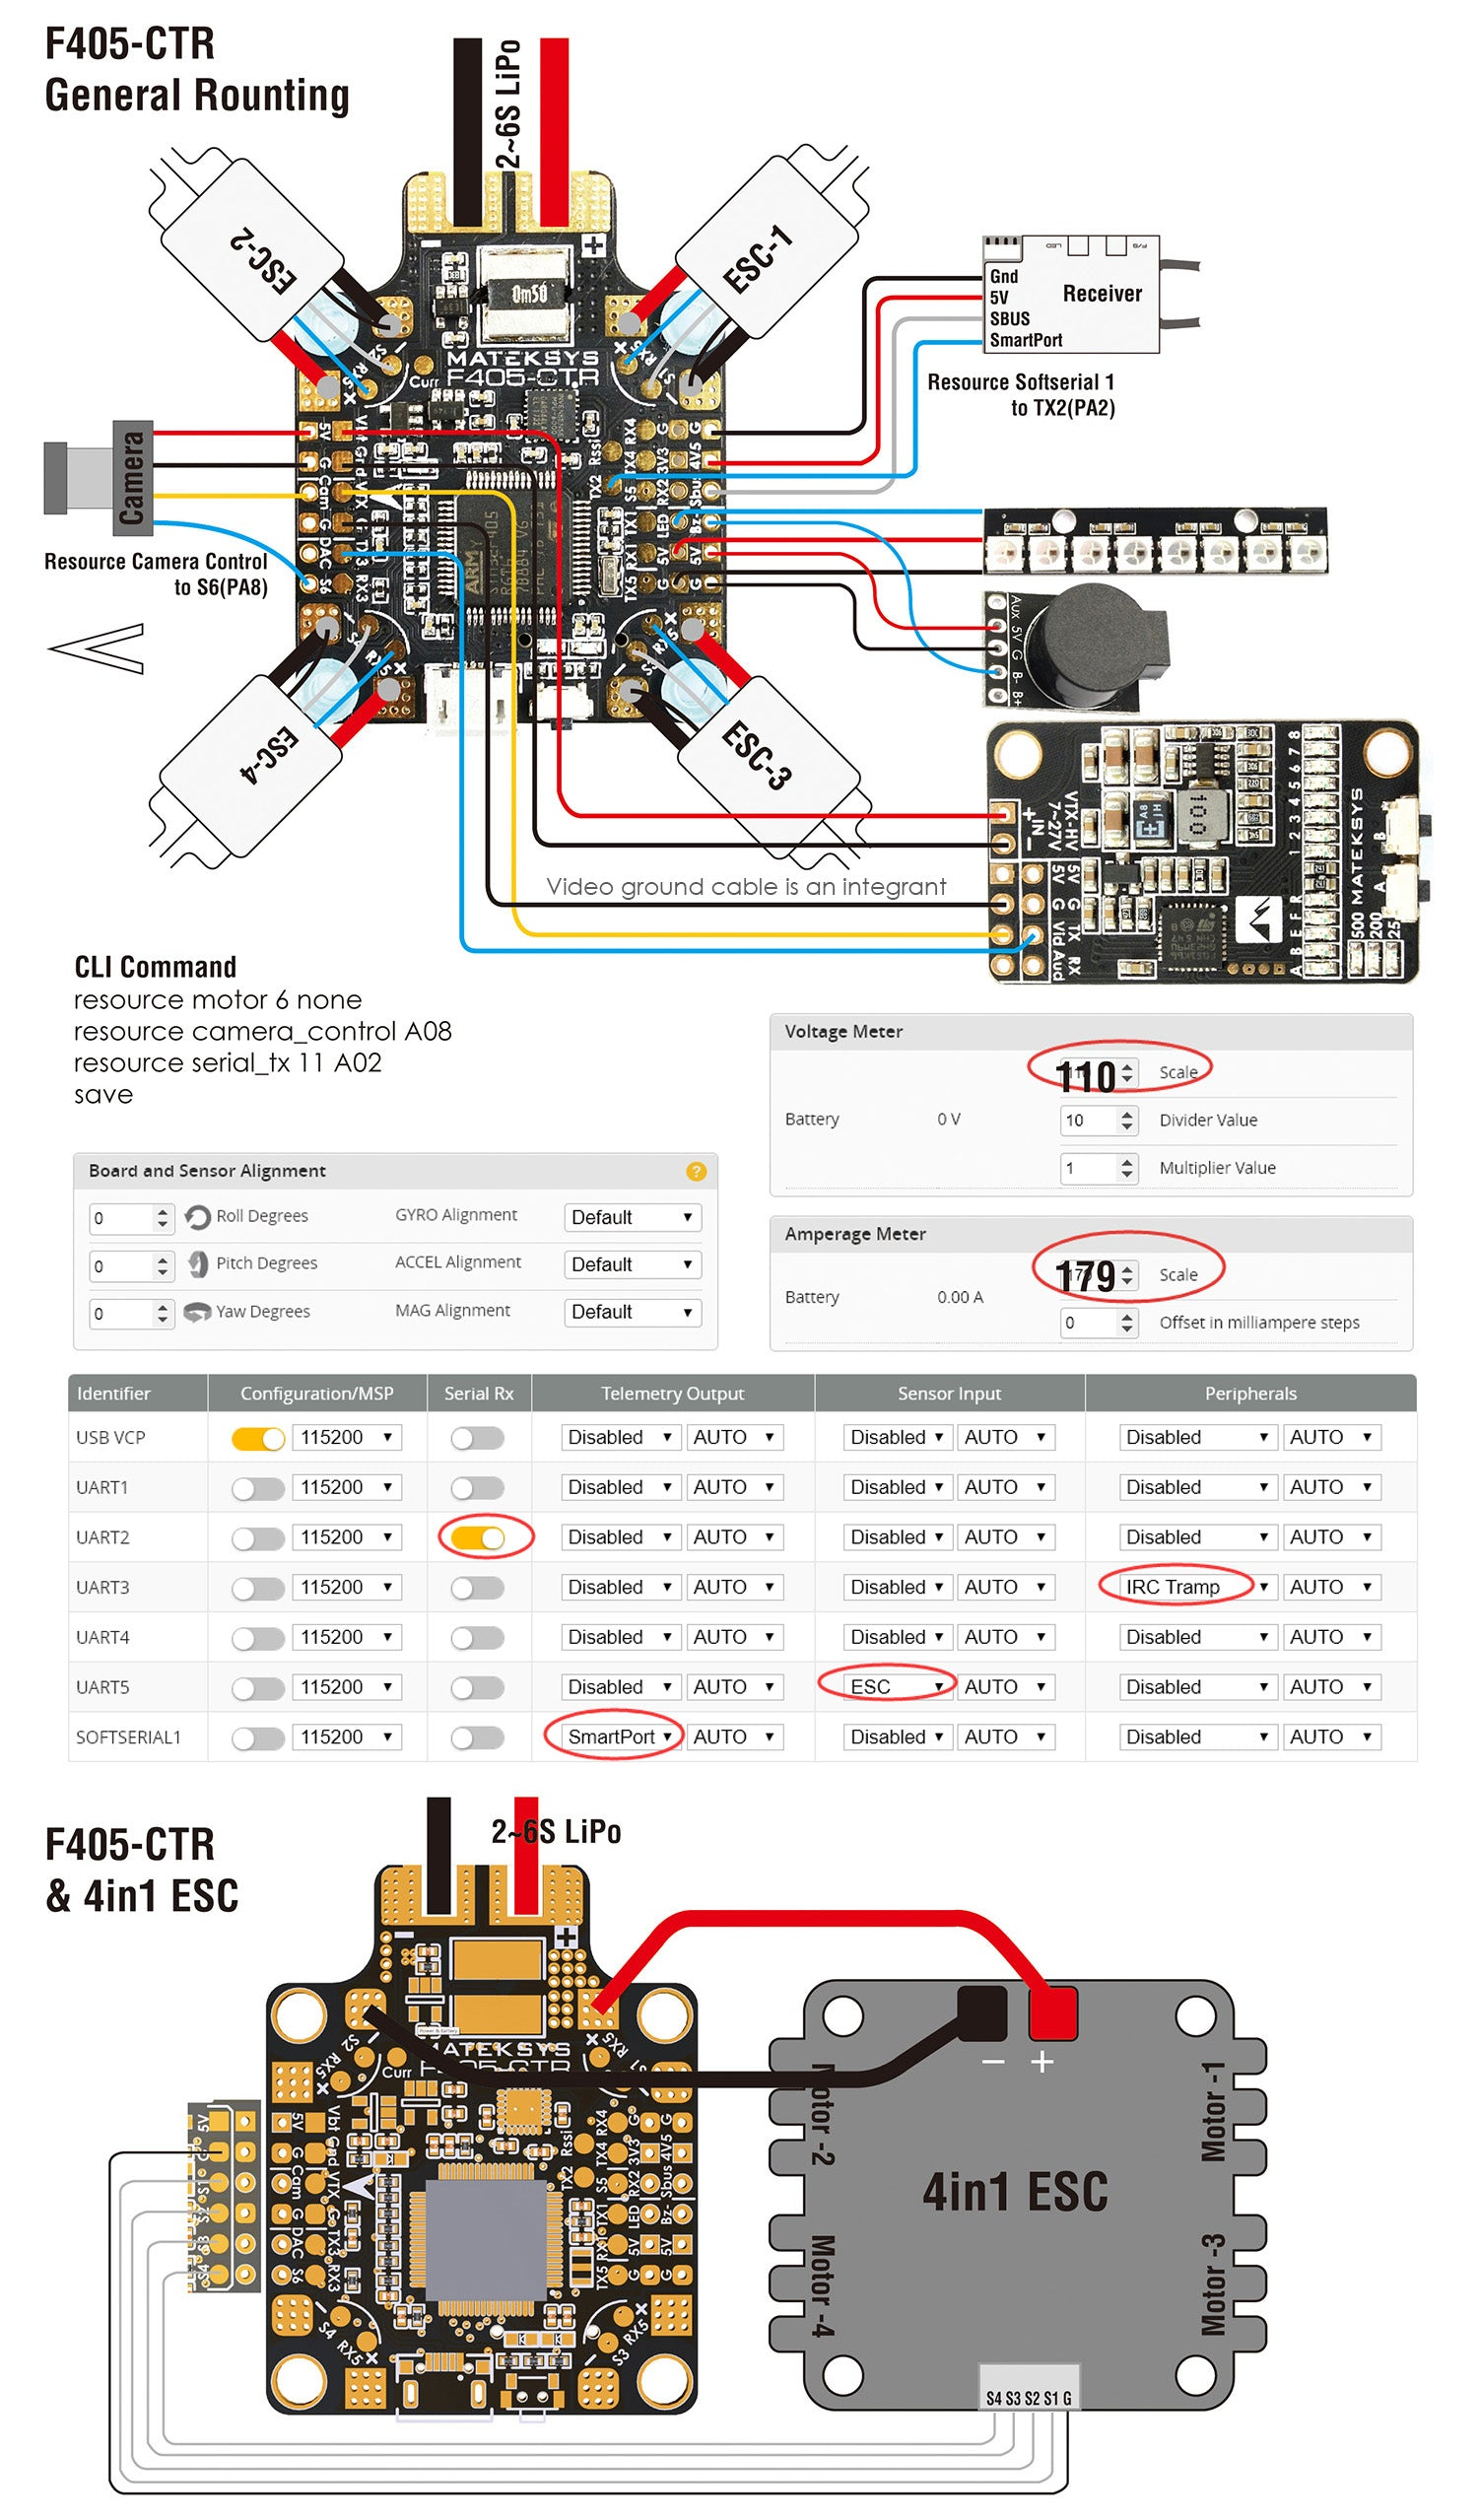 matek f405-ctr flight controller wiring and configuration diagram